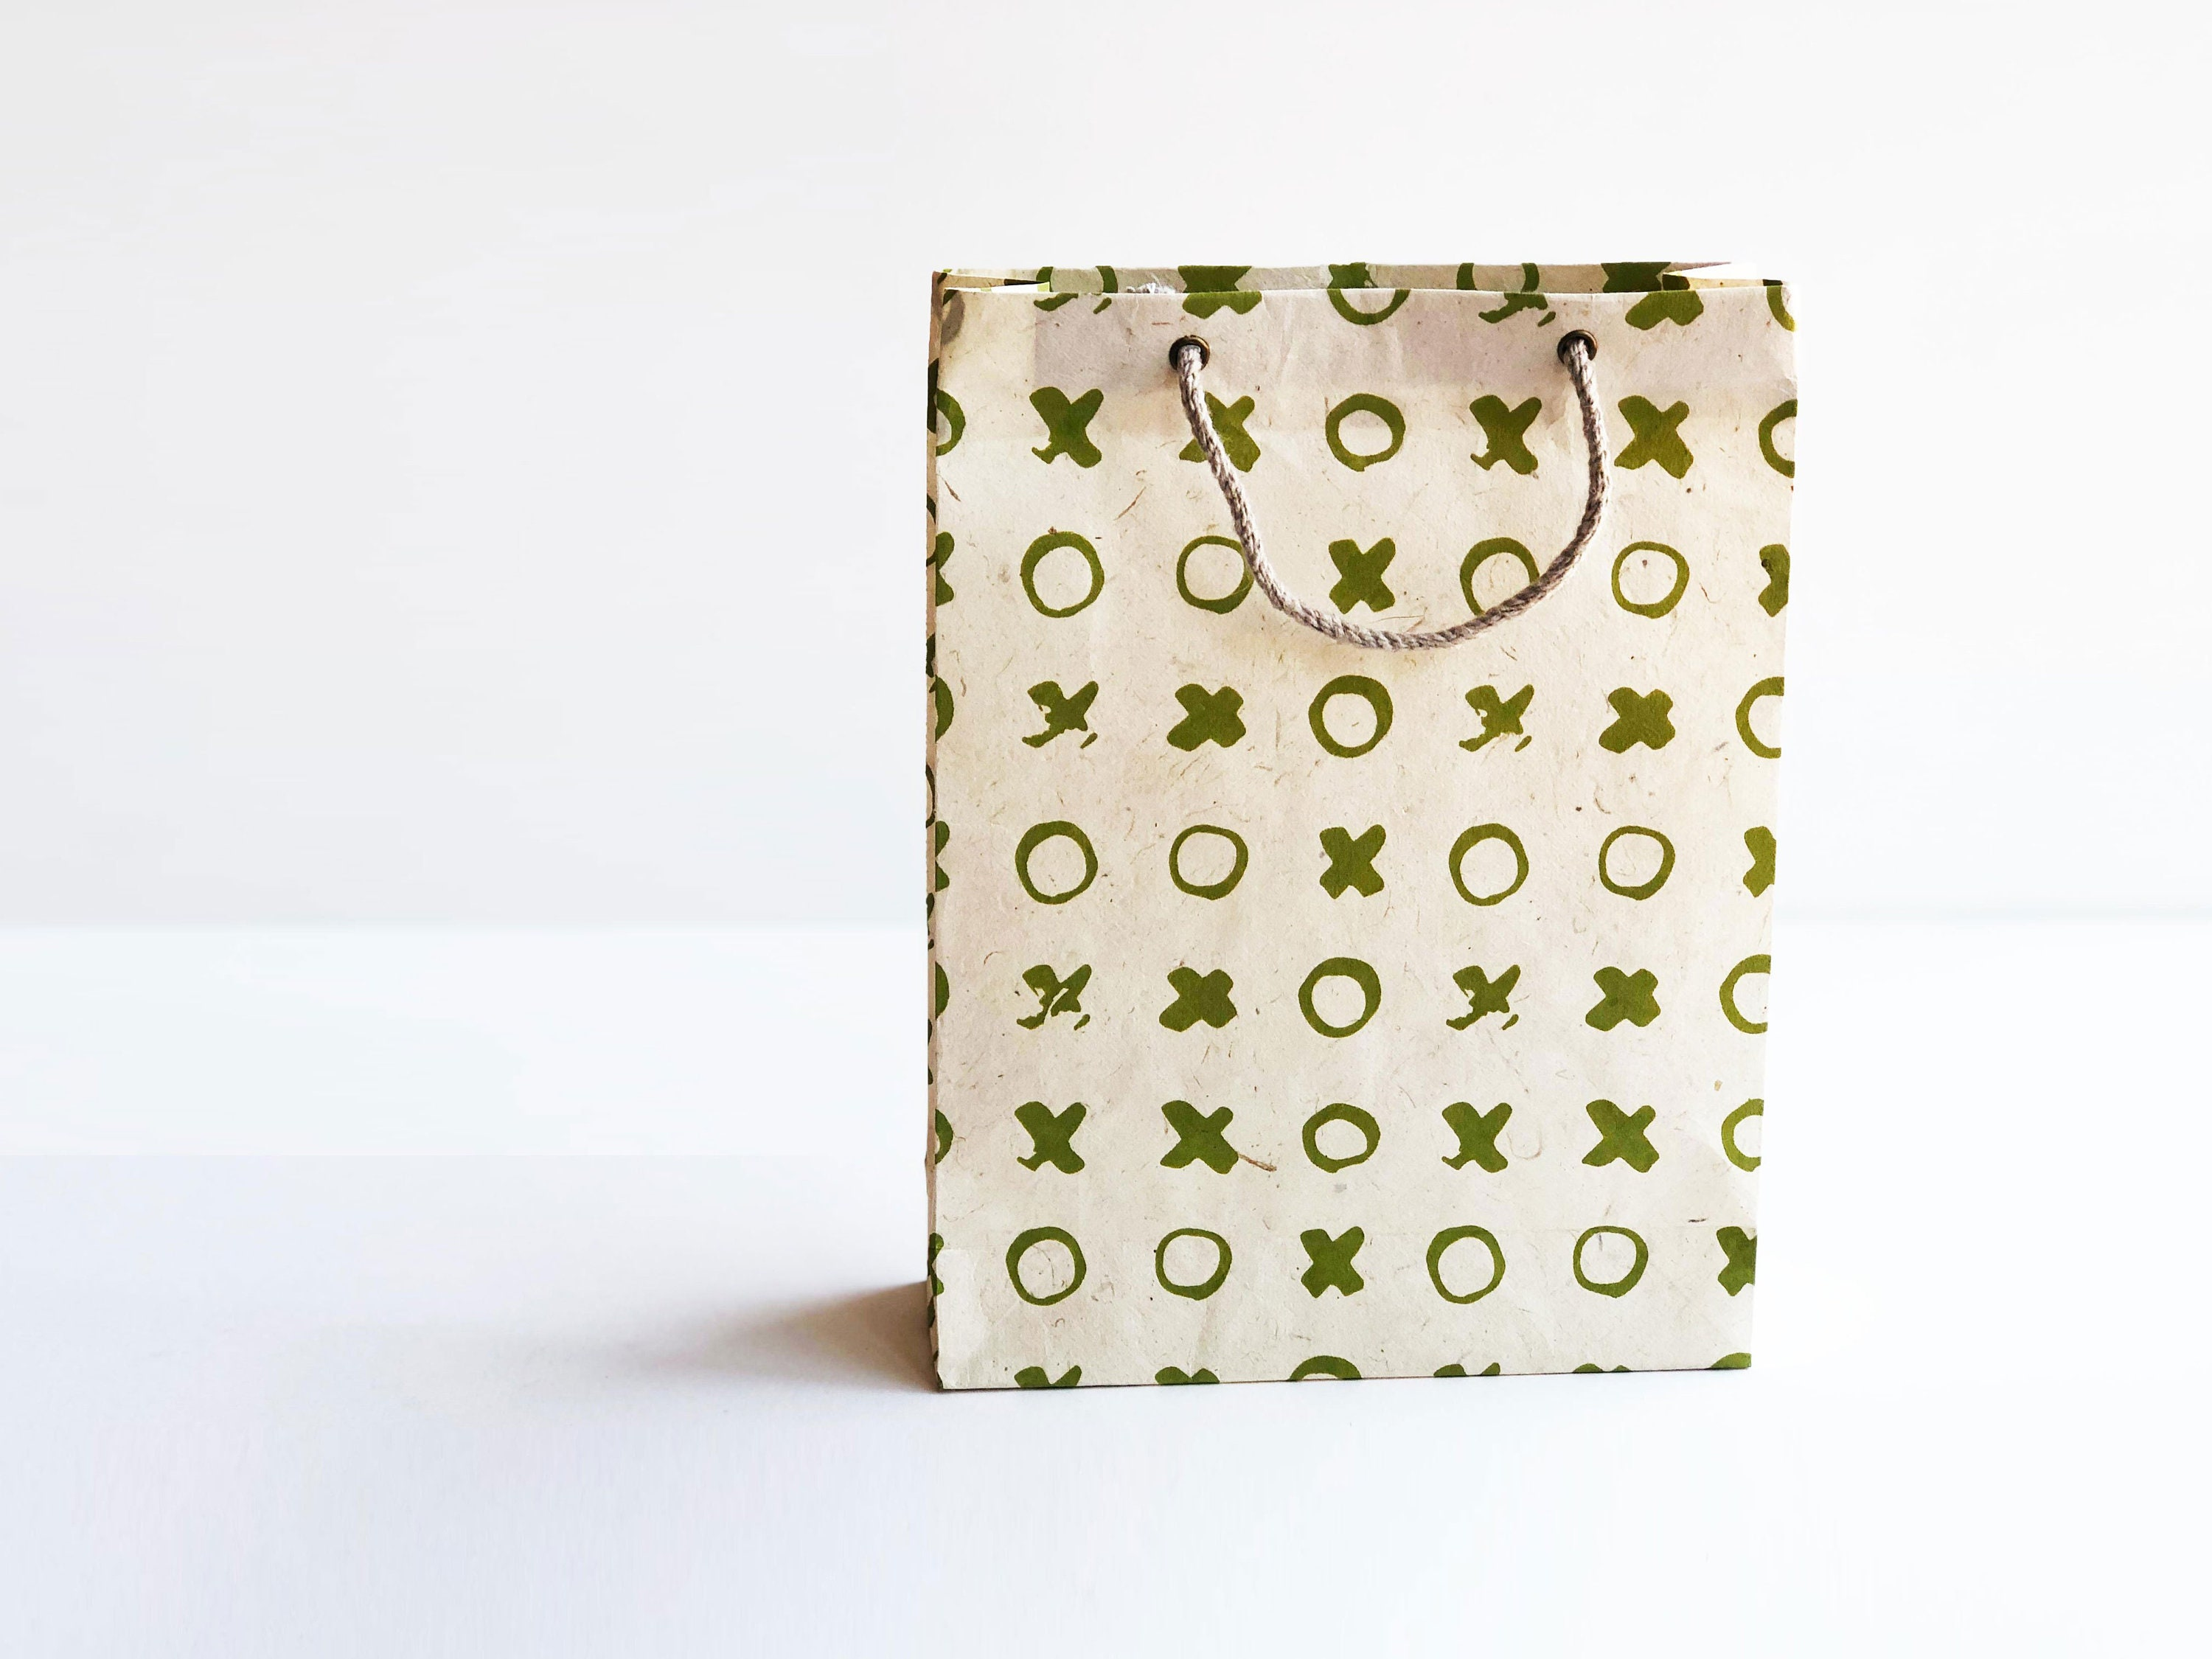 Loktaa - Handmade Nepalese Paper - Gift Wraps and Gift Bags